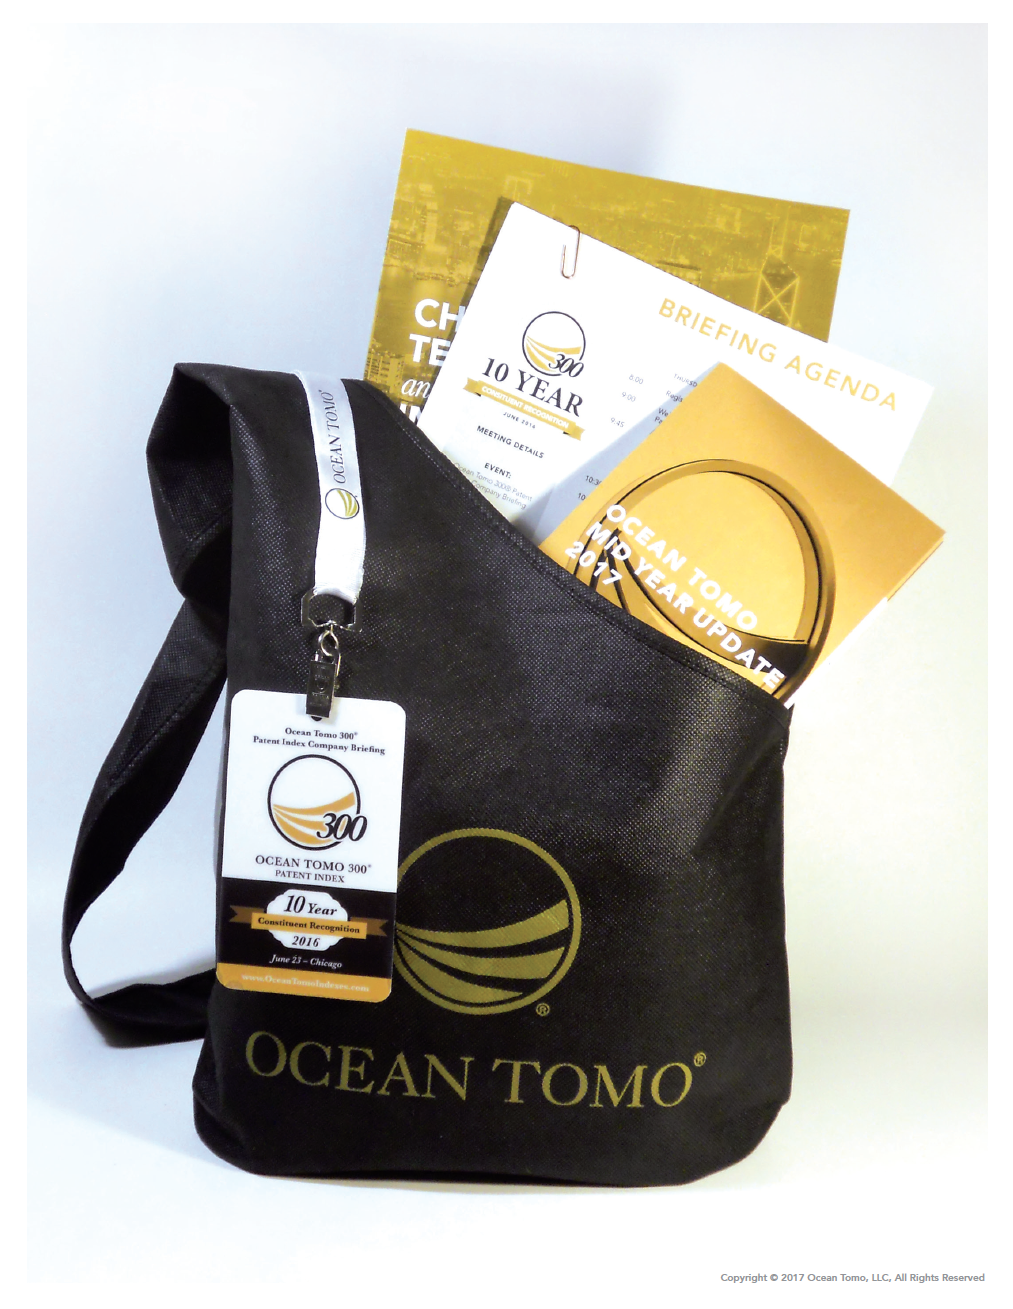 Ocean Tomo Convention Bag